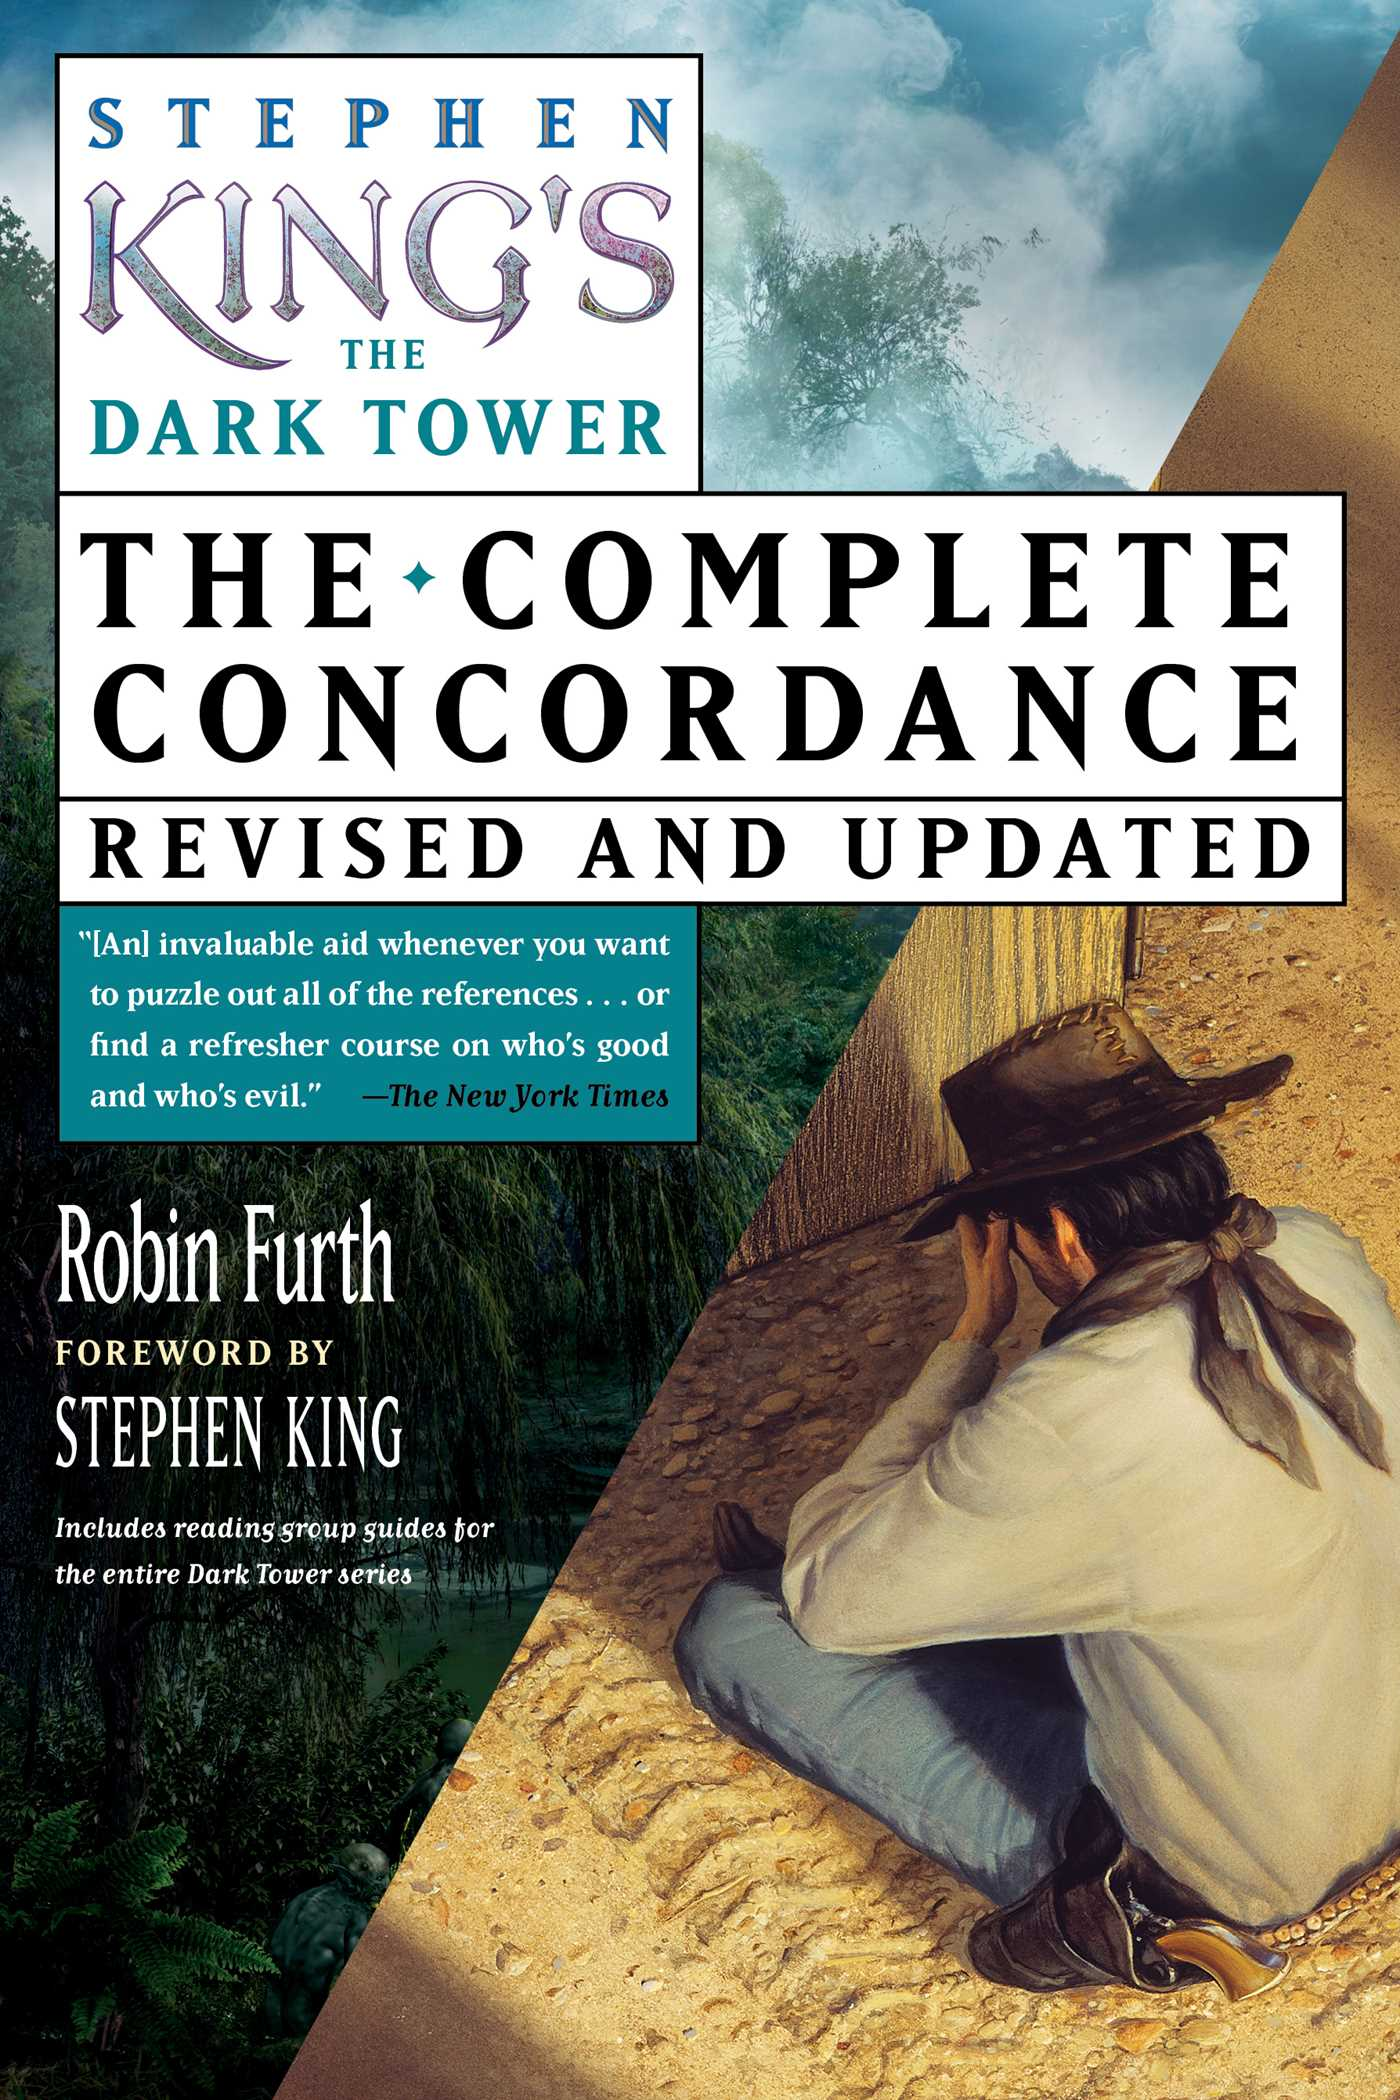 Ebook Stephen Kings The Dark Tower The Complete Concordance By Robin Furth